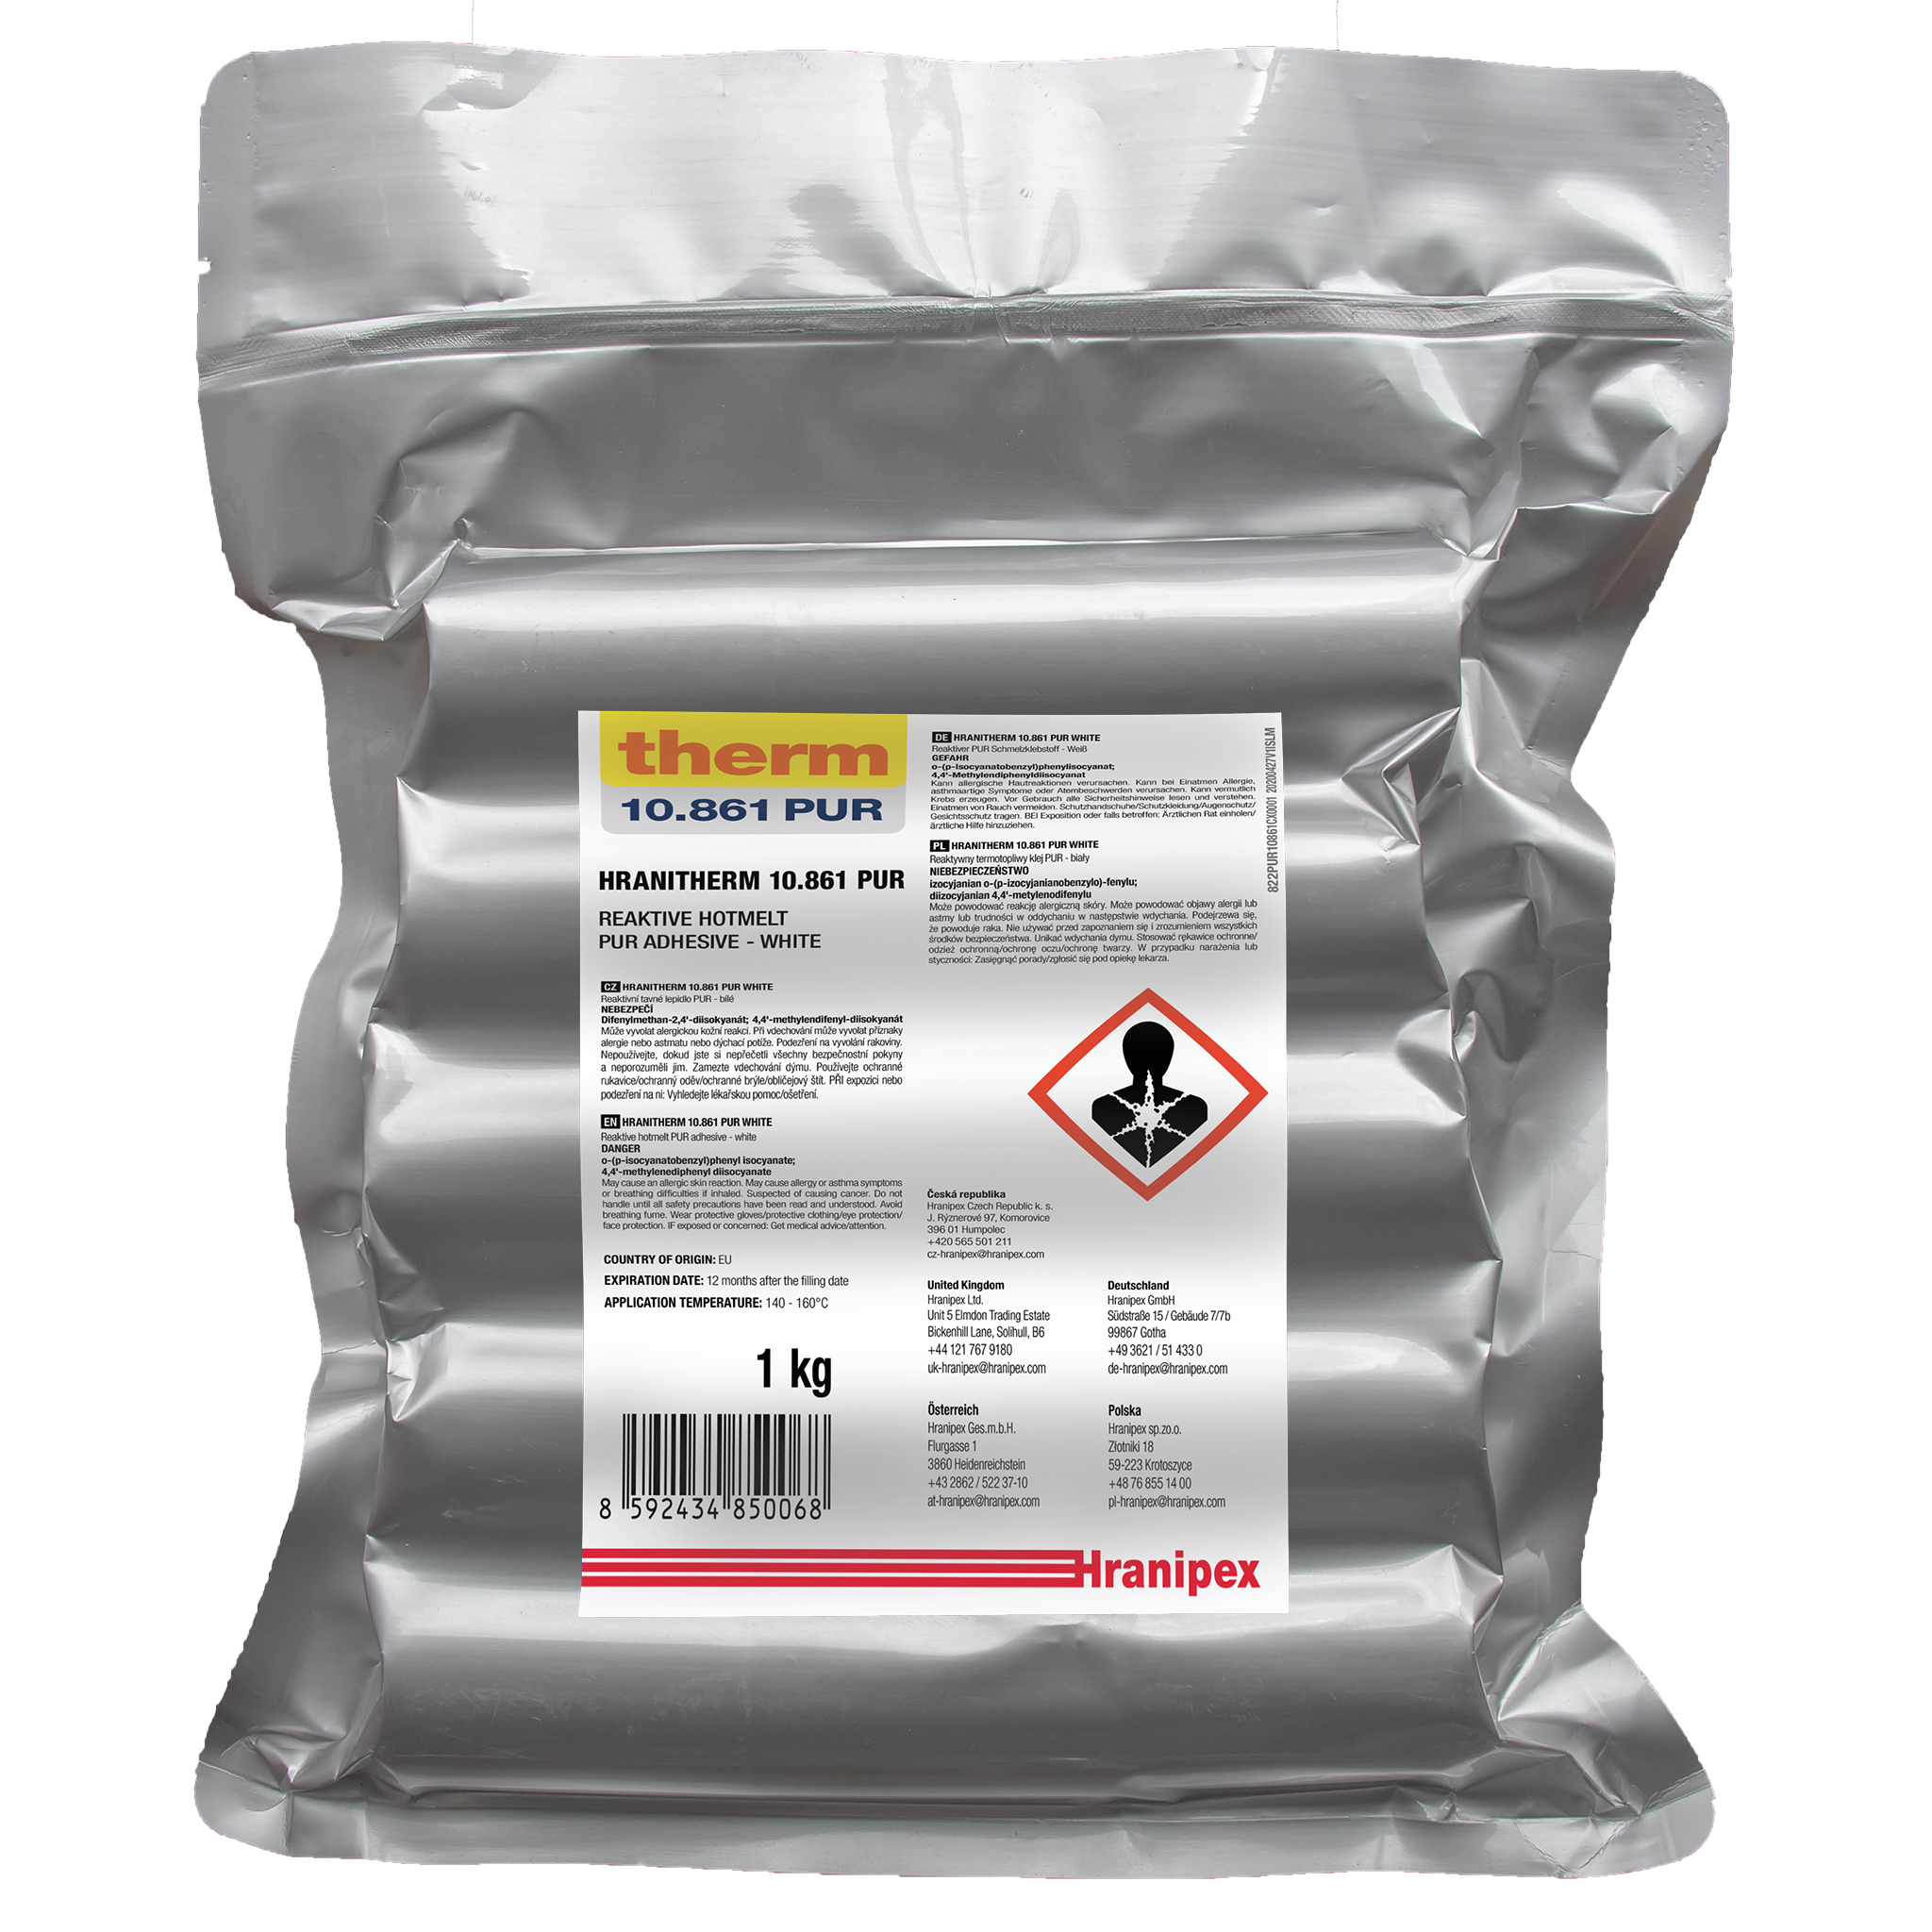 HRANITHERM 10.861 Blanc - PUR Thermofusible